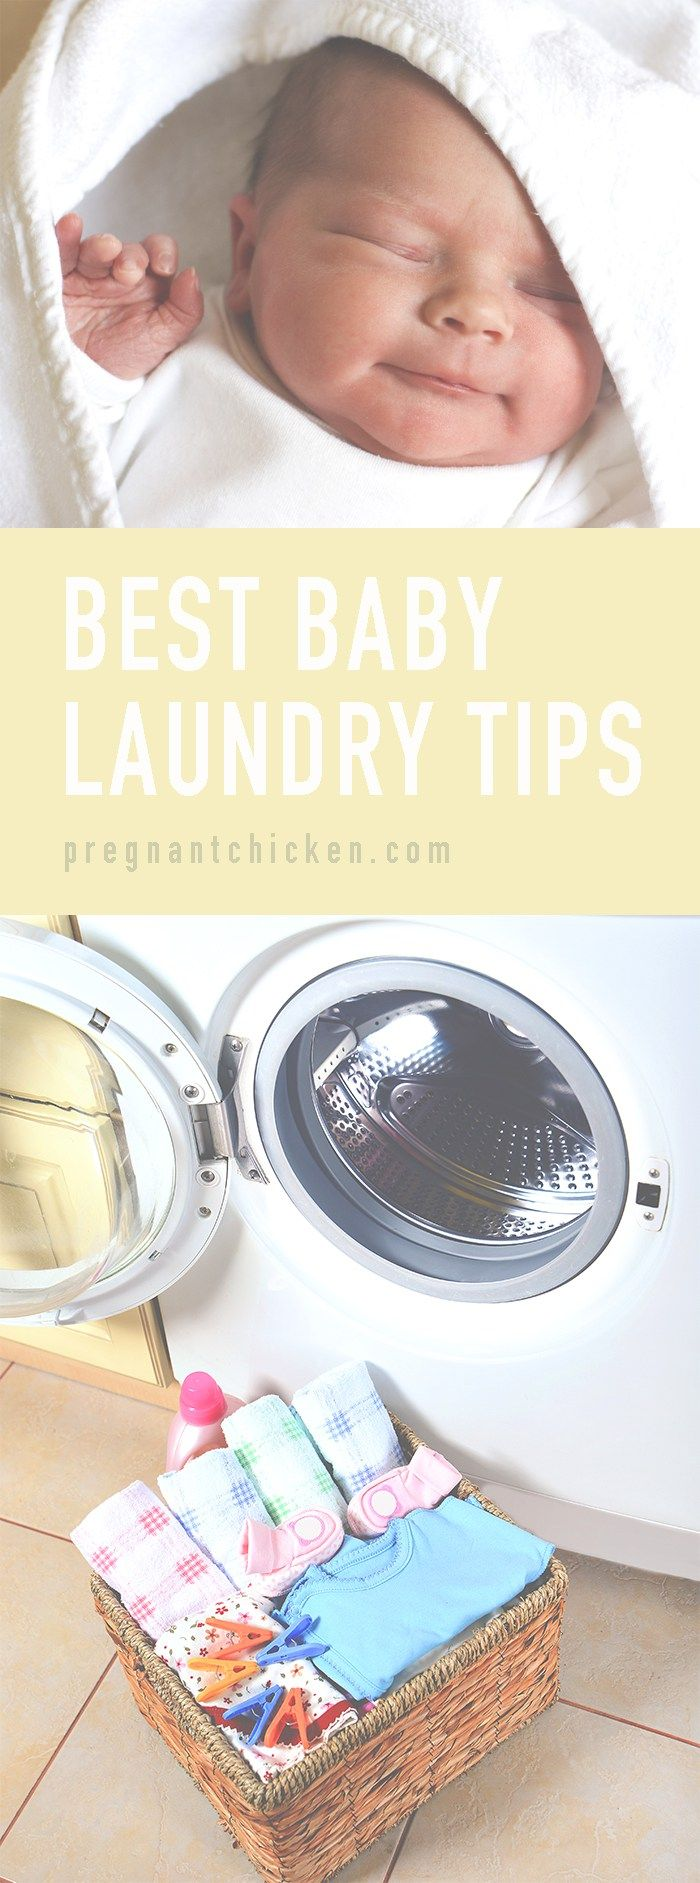 We've compiled a list of the best baby laundry tips from our readers into one place. From stain removing to detergent choices these hacks should be helpful